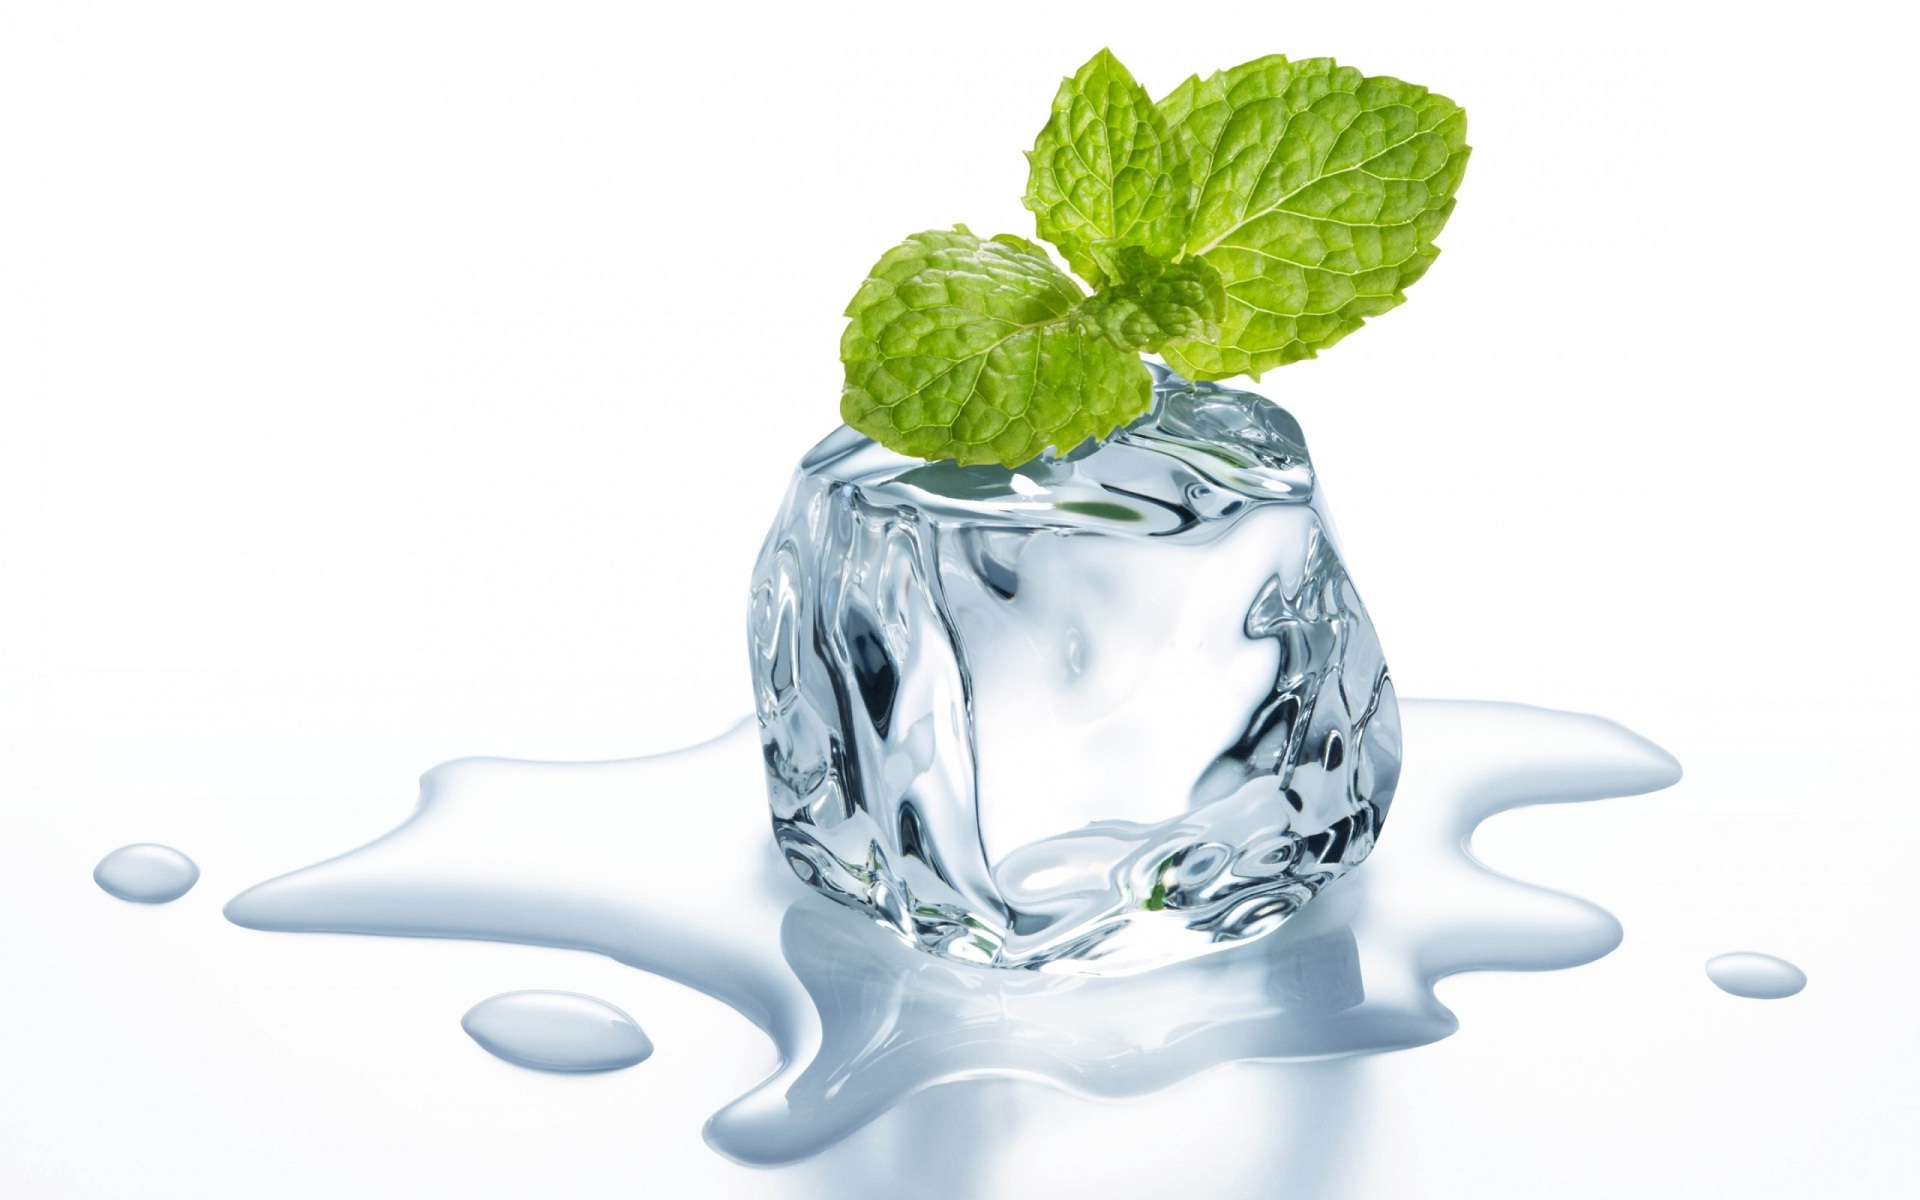 mint-leaves-on-ice-slice-3d-glass-wallpaper.jpg